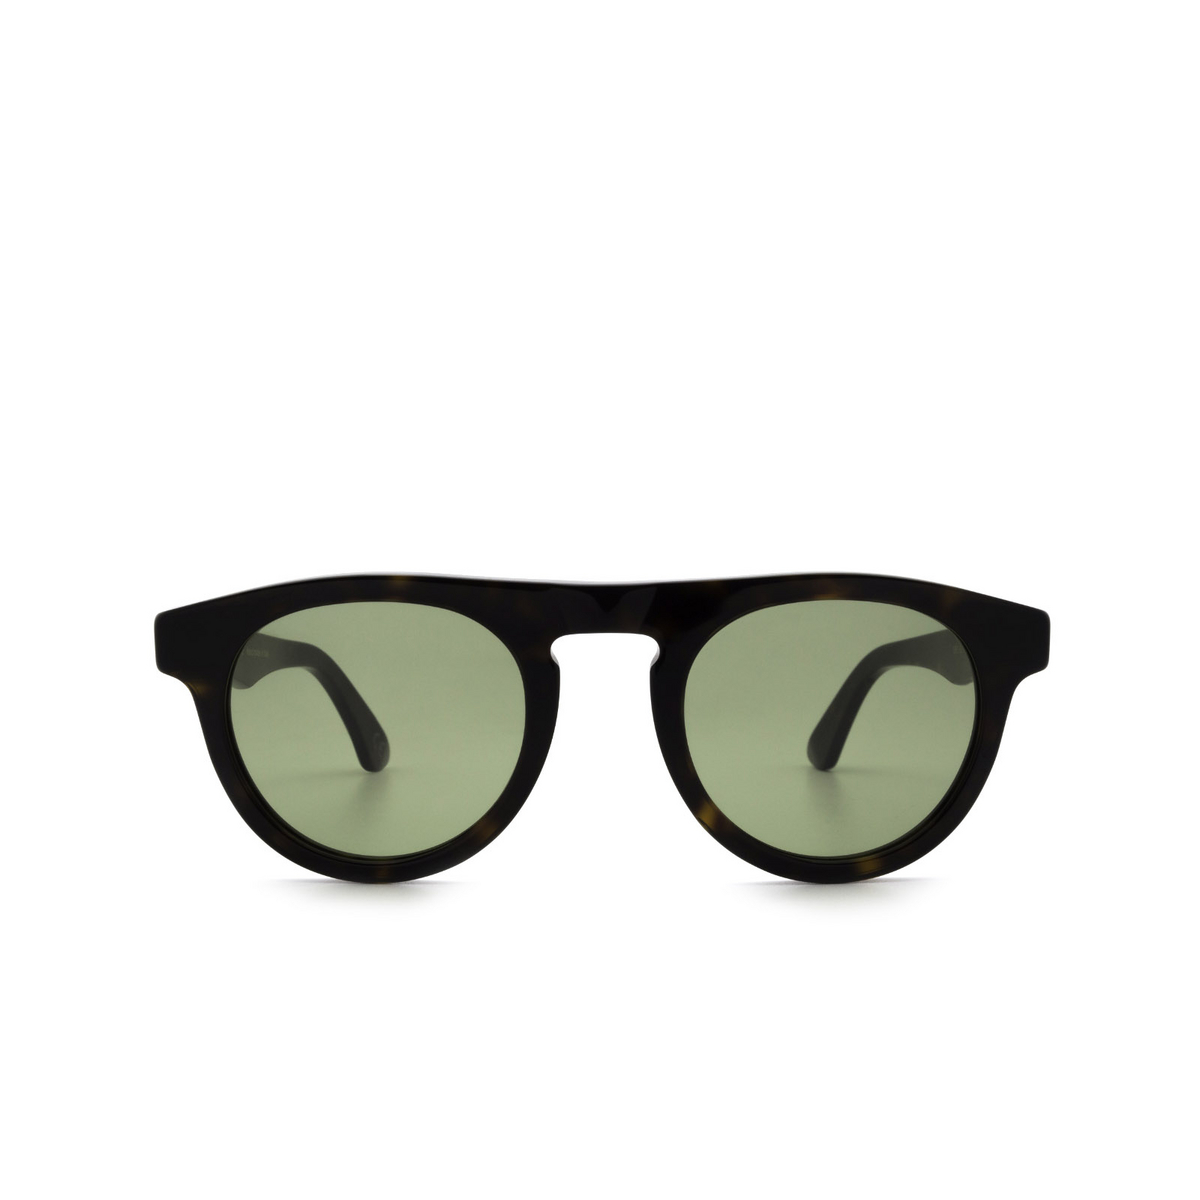 Retrosuperfuture® Round Sunglasses: Racer color 3627 V51 - front view.